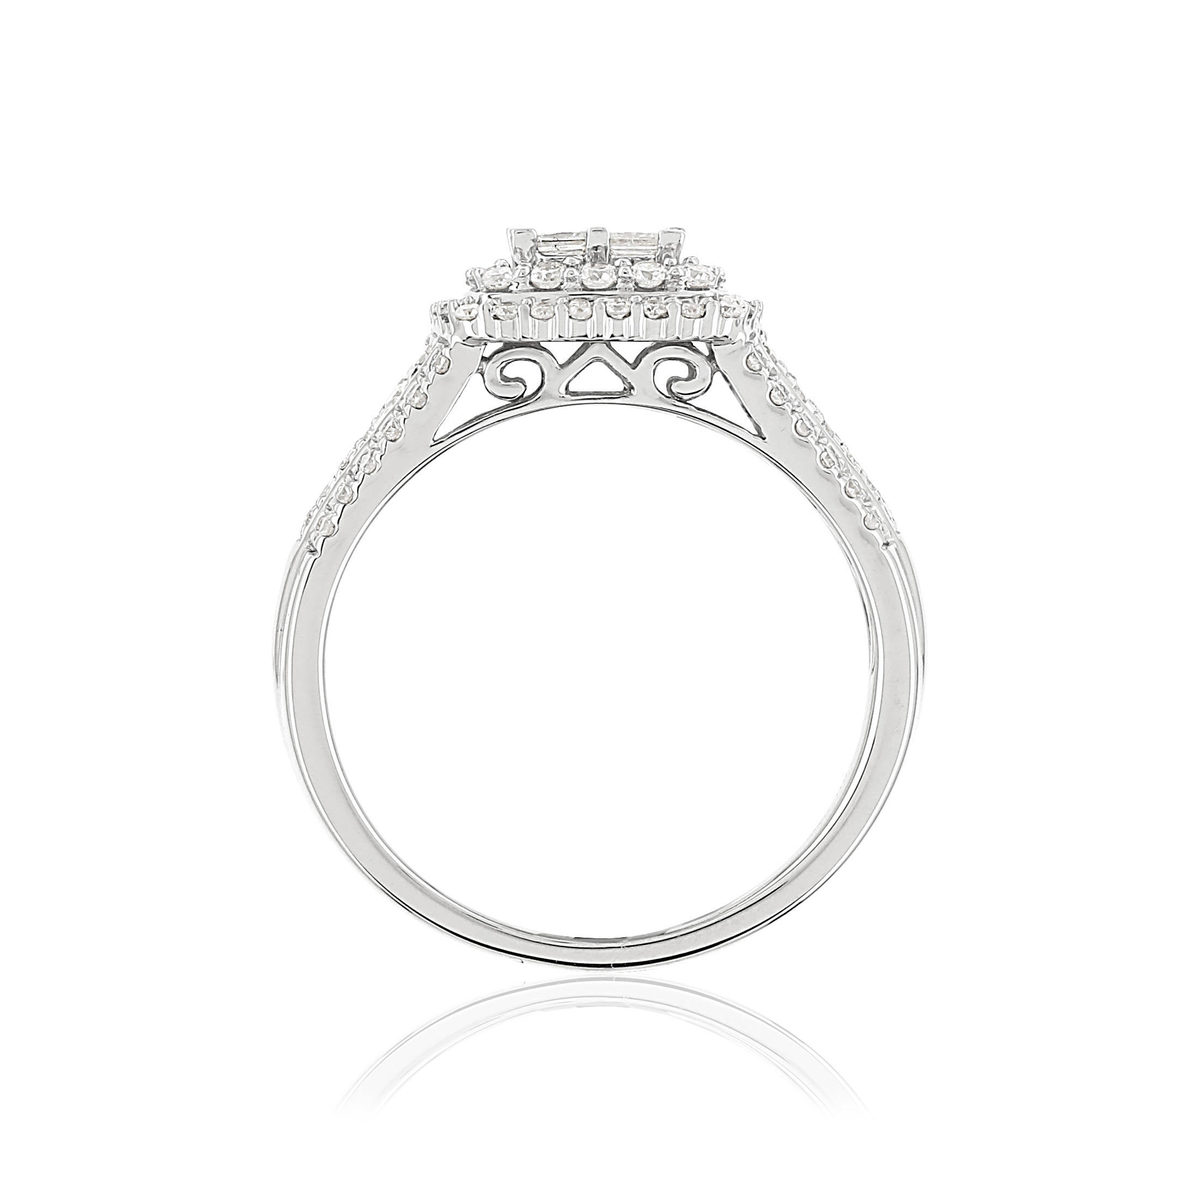 Bague MATY Or 750 blanc Diamants blancs - vue V2